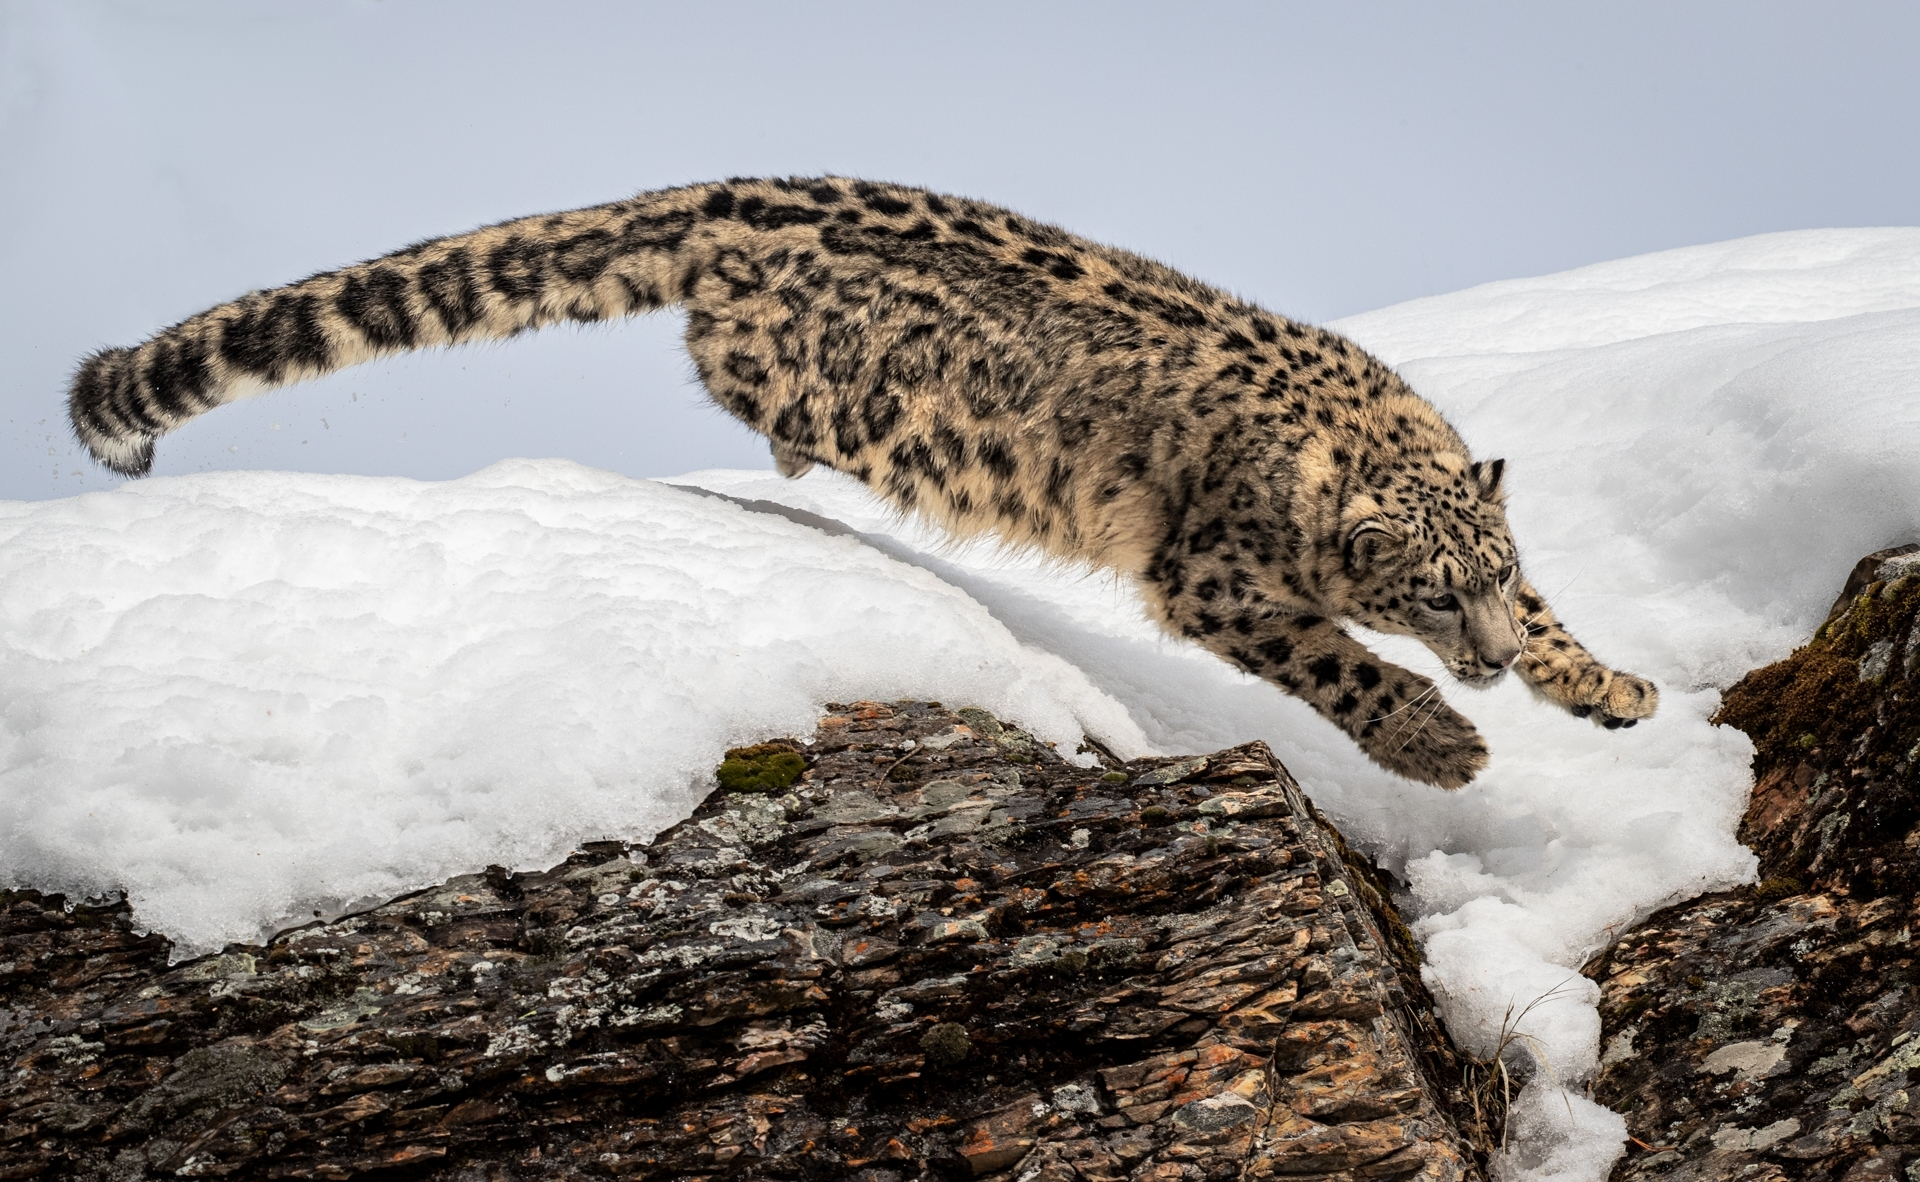 A-snow-leopard-leaps-off-a-cliff-NI-Best-in-Show-by-John-Templeton-CC